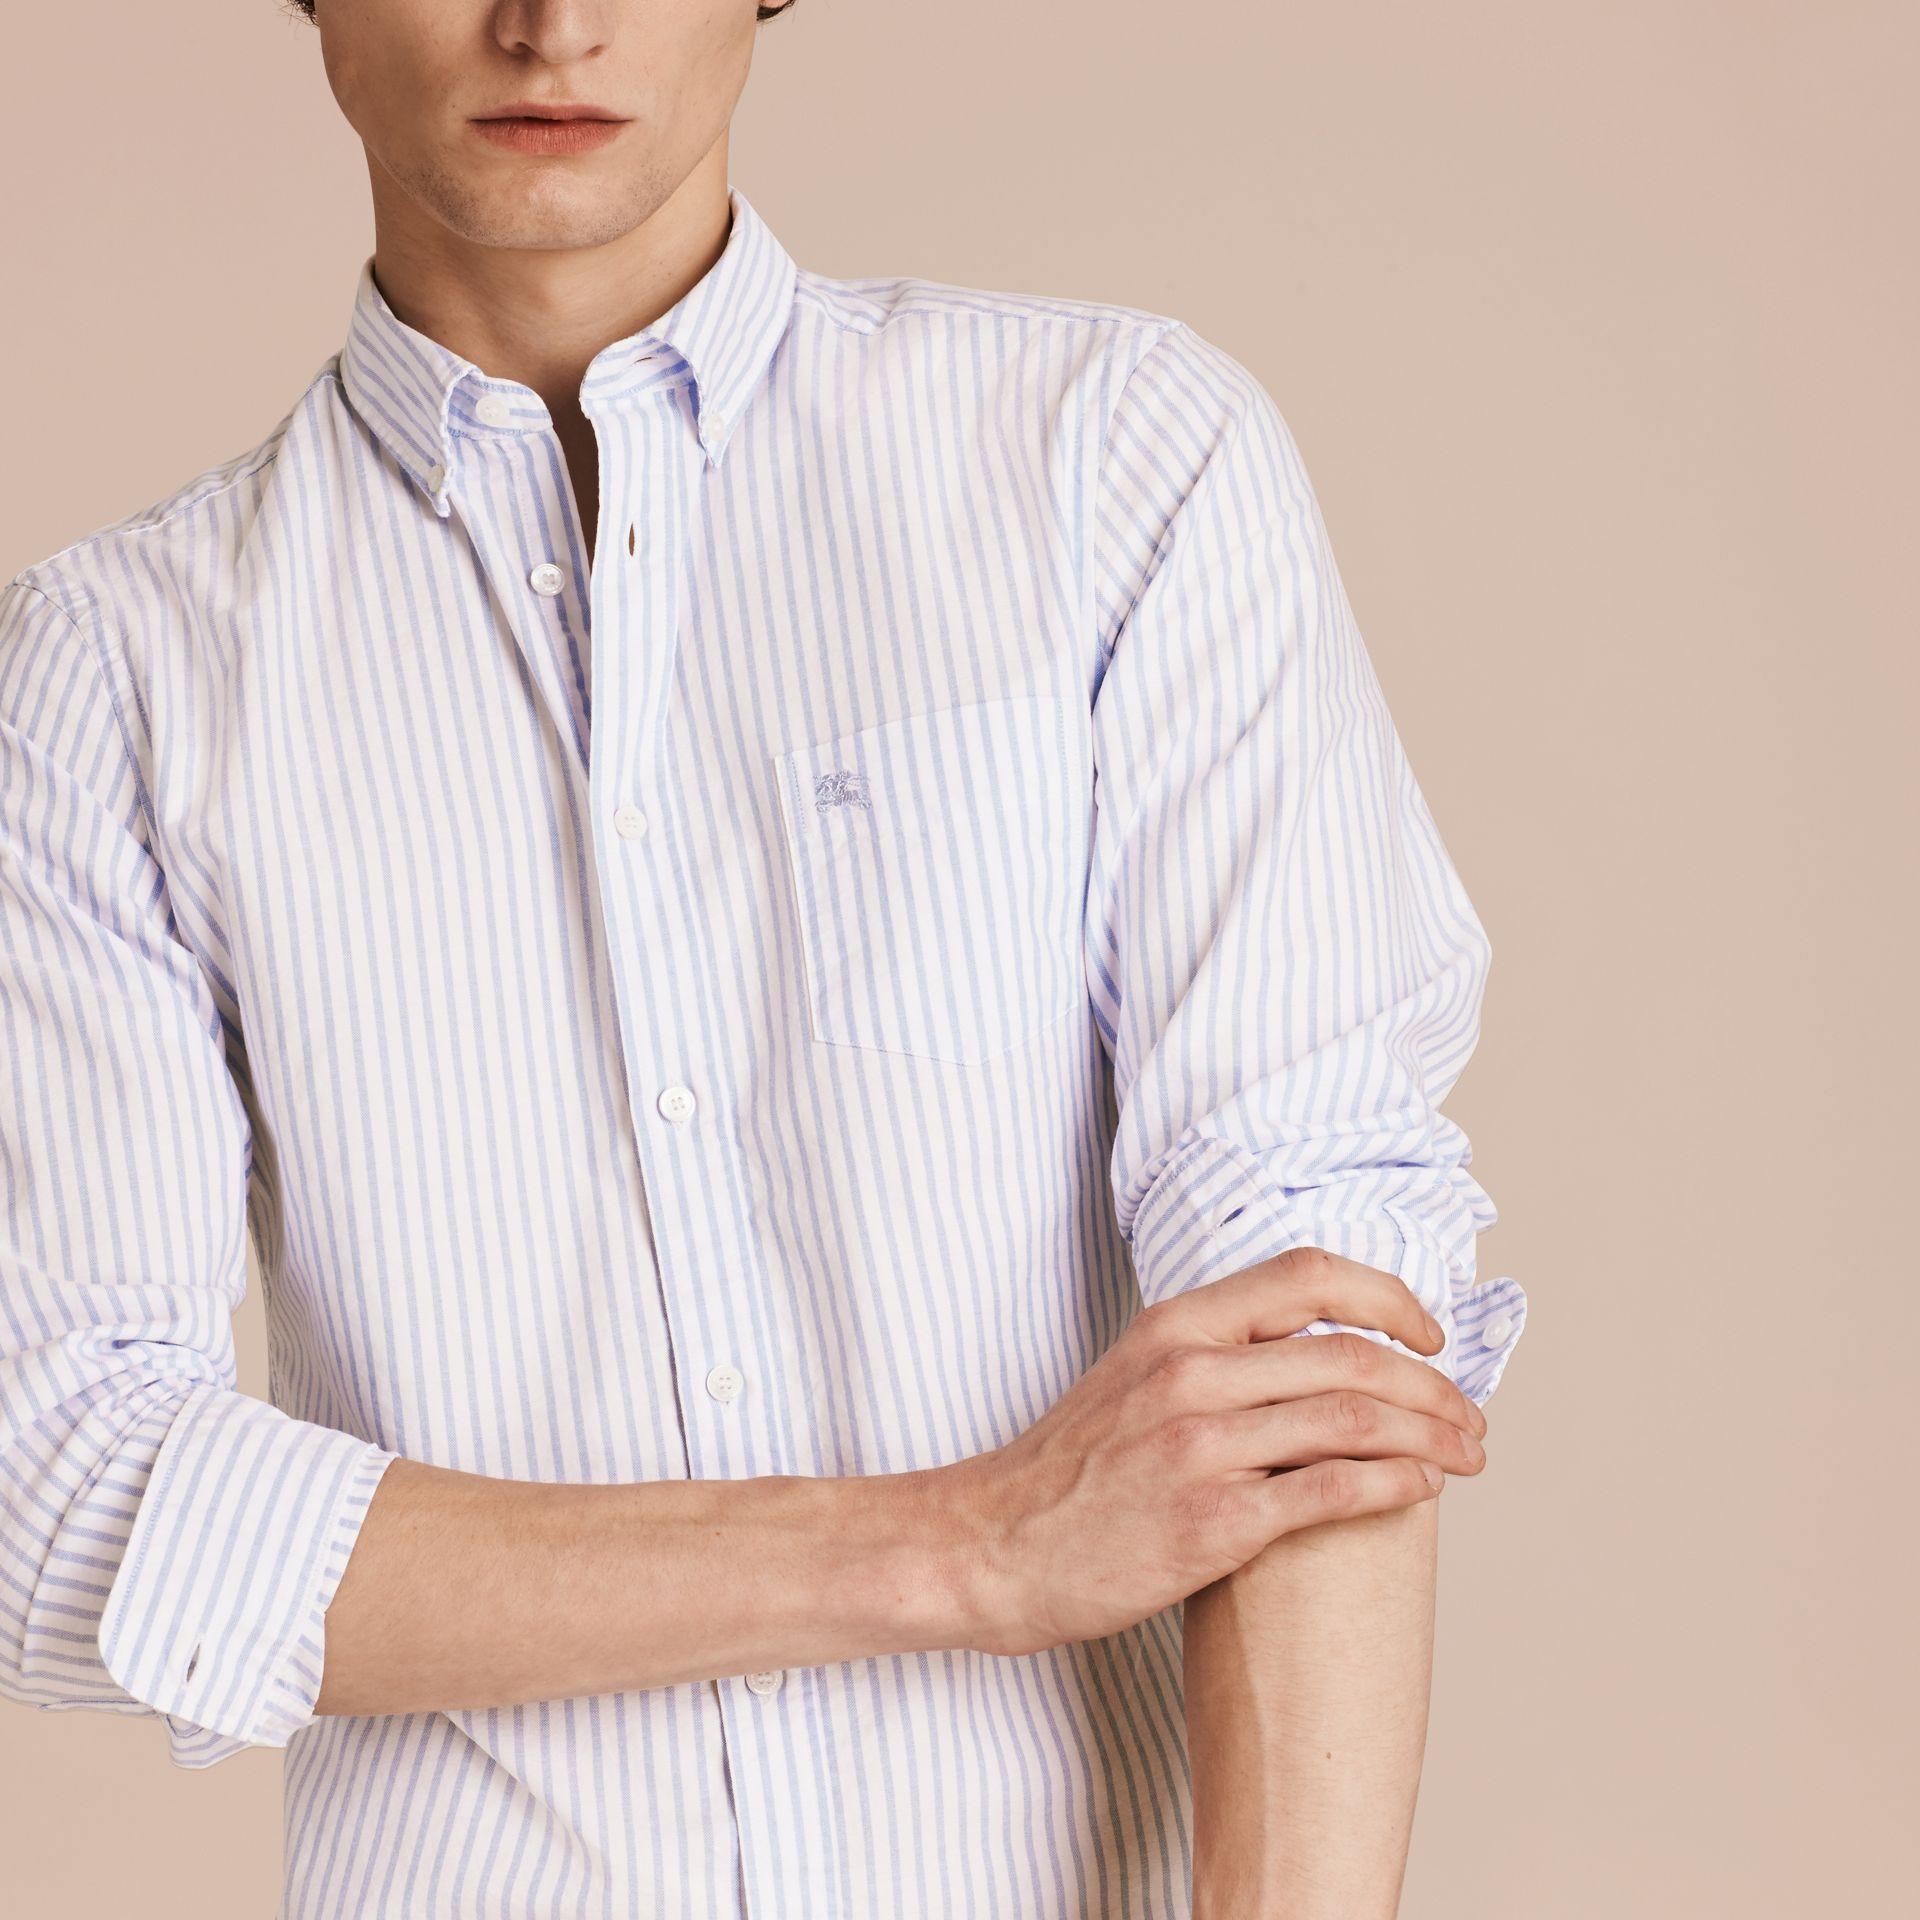 Pale blue Button-down Collar Oxford Stripe Cotton Shirt Pale Blue - gallery image 4